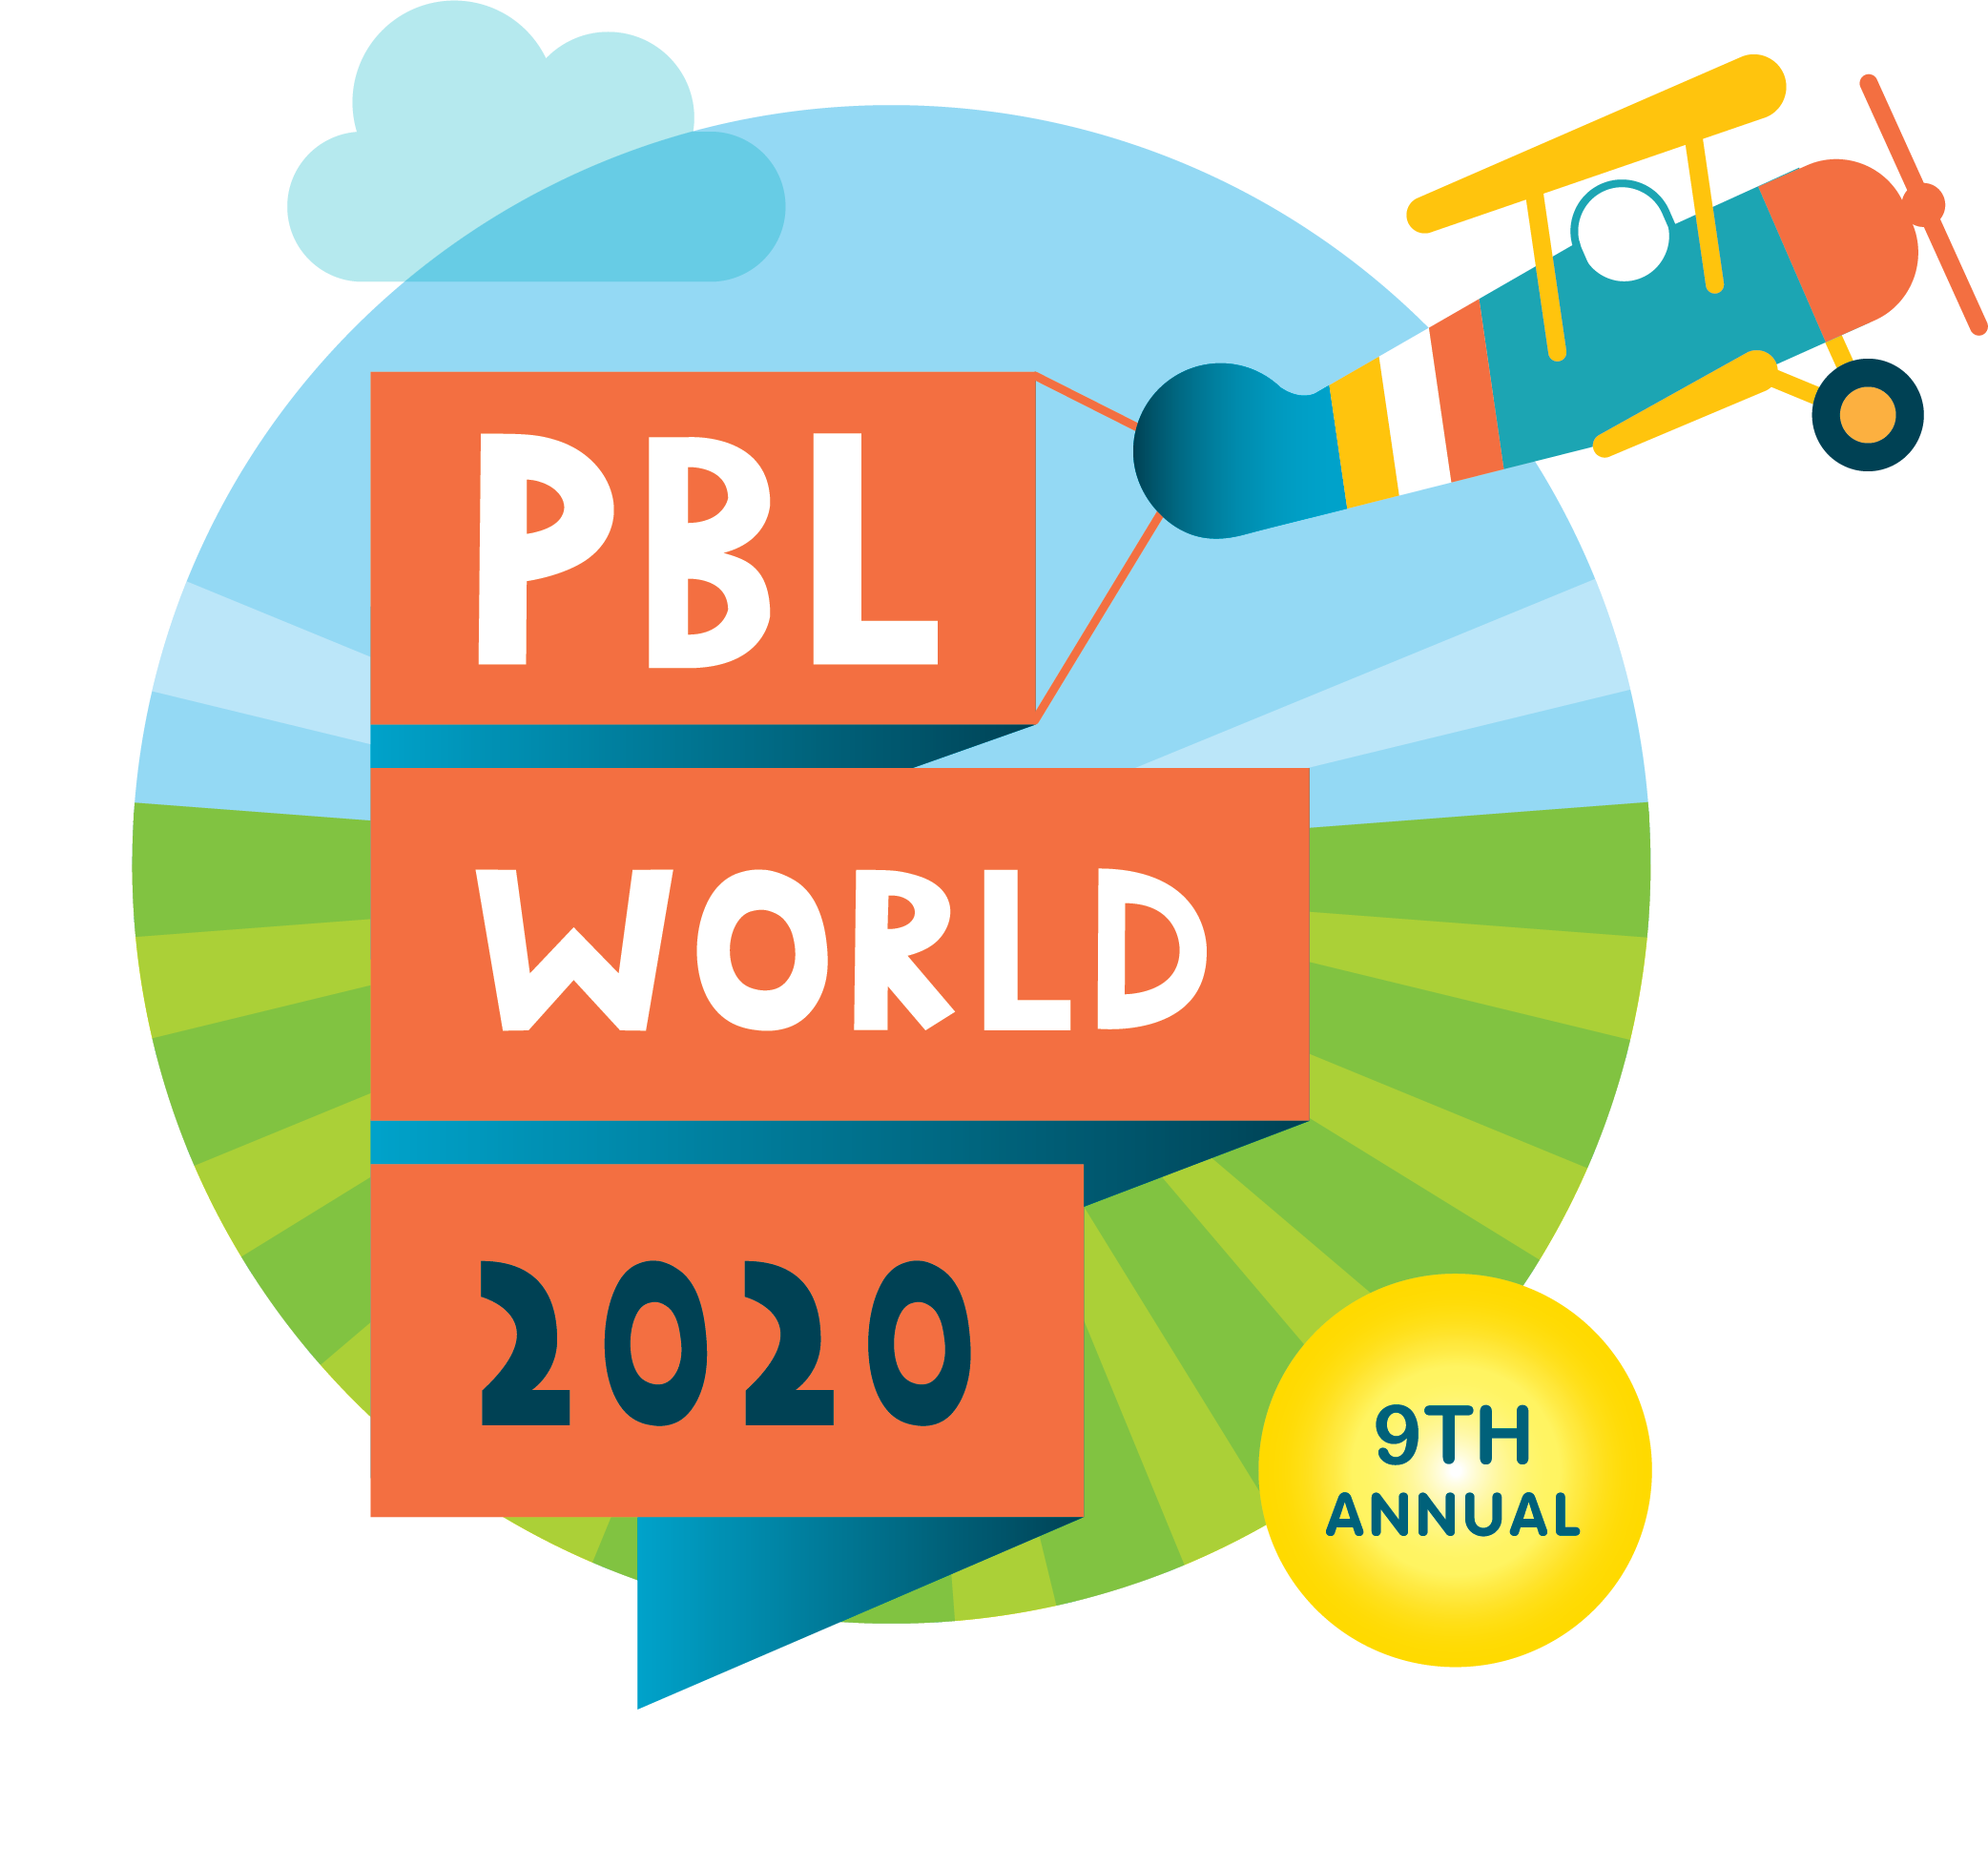 PBL World 2020